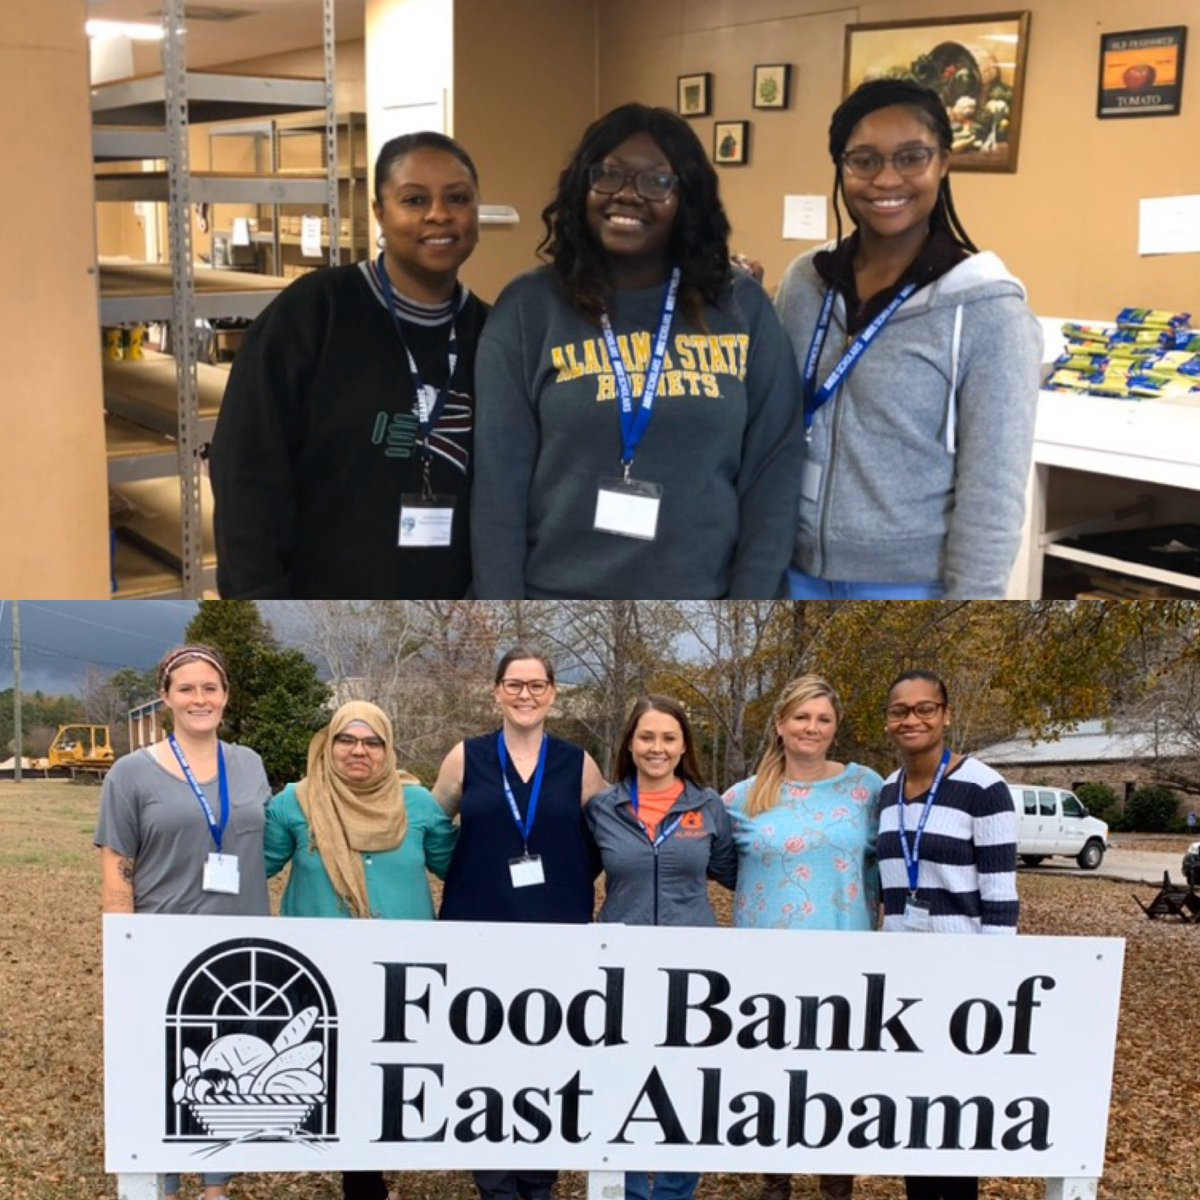 Great job helping out at our local food pantries #ahecscholars!! #givingback <br>http://pic.twitter.com/USFZJszwby